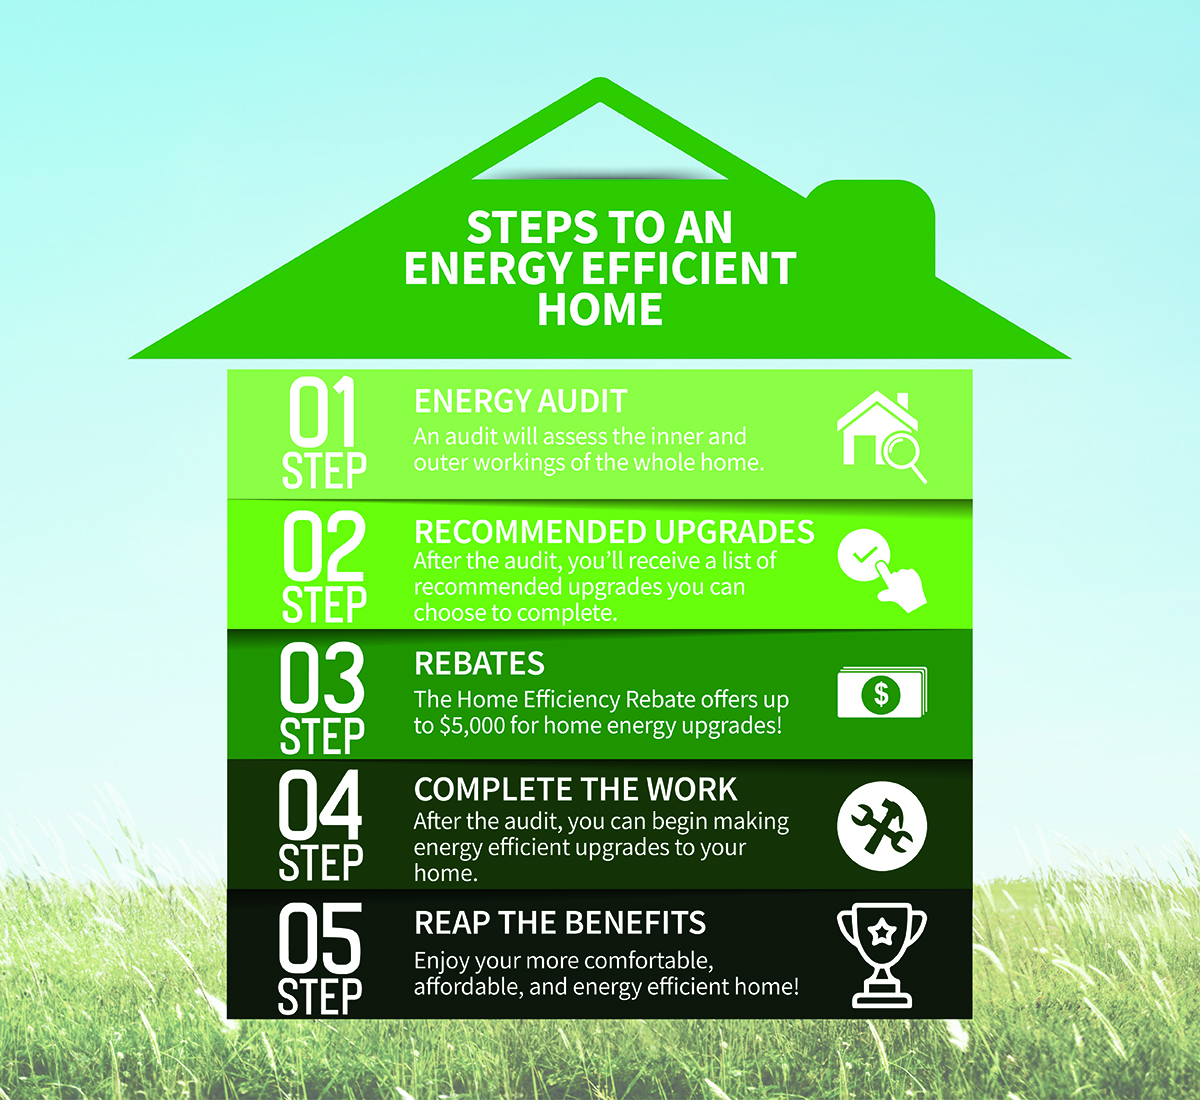 old homes can be energy efficient with the home efficiency rebate